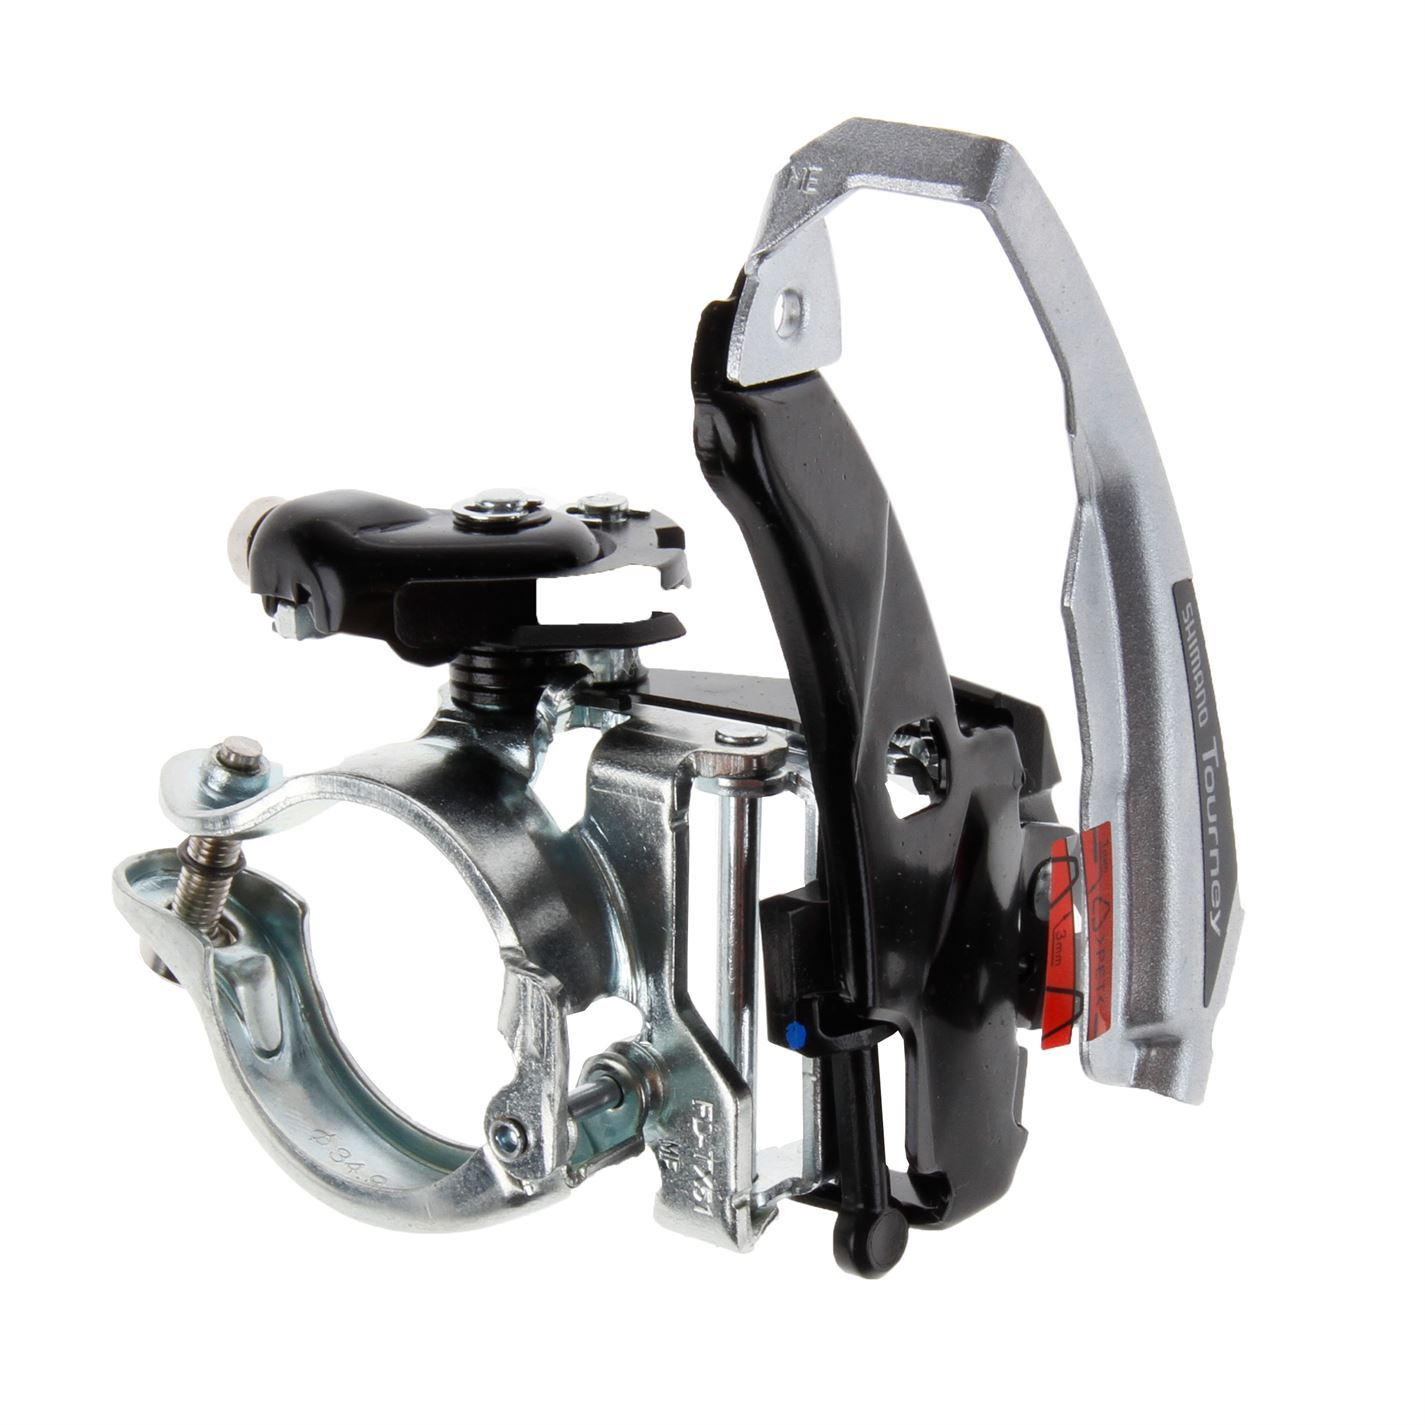 Shimano Bicycle Replacement Parts : Shimano tourney front derailleur bike components repair